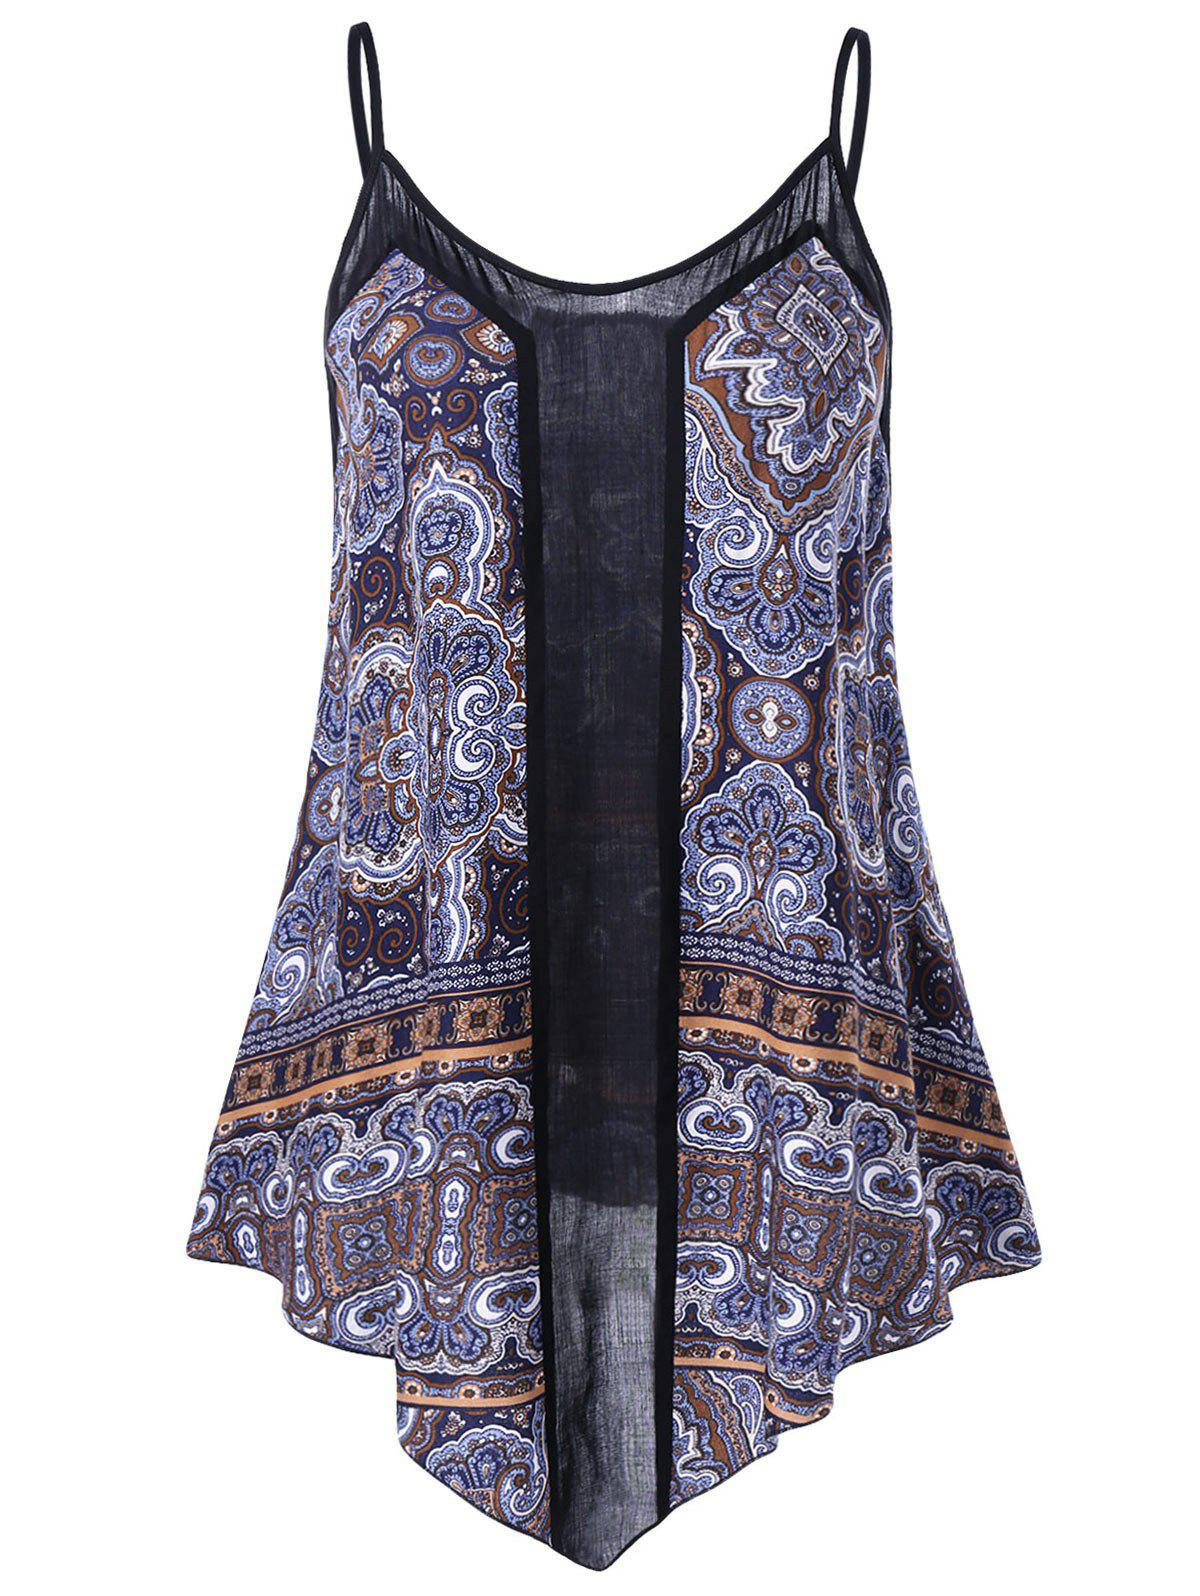 Plus Size Paisley Tank Top inc new purple pink paisley printed women s size small s tank cami top $59